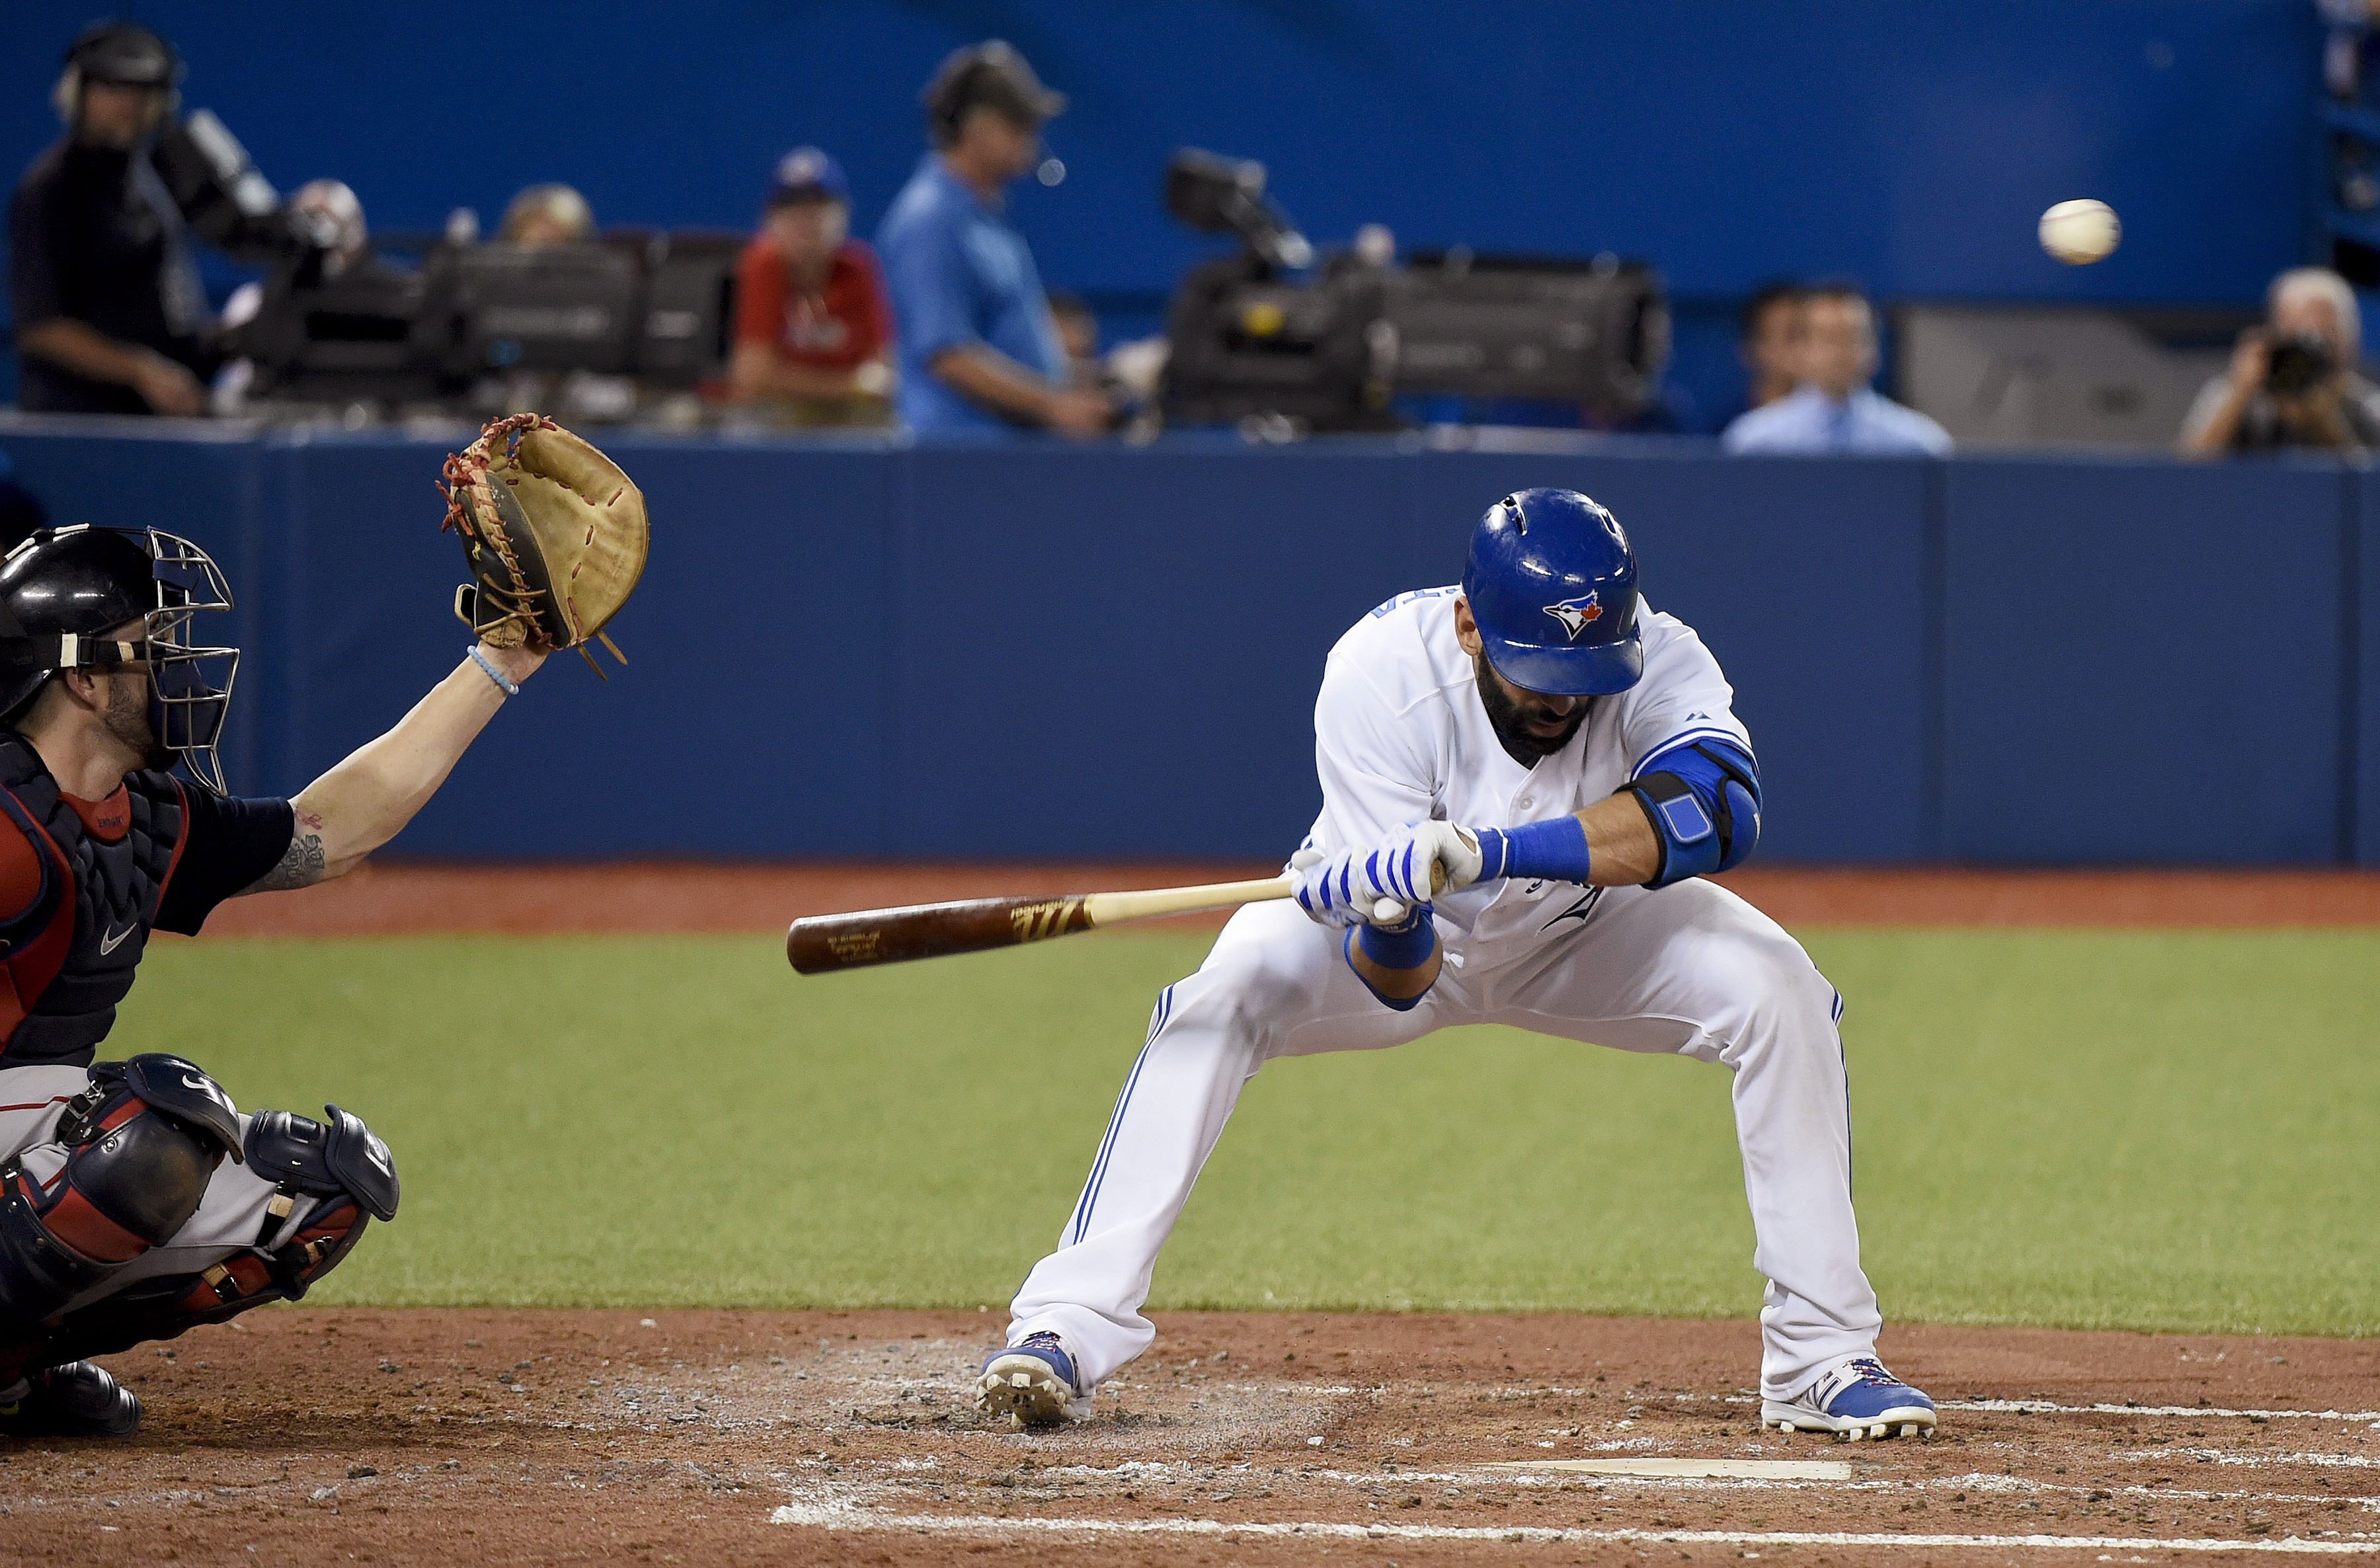 Toronto Blue Jays' Jose Bautista ducks away from a high, inside pitch by the Boston Red Sox during the fourth inning of a baseball game Friday, Sept. 18, 2015, in Toronto. (Nathan Denette/The Canadian Press via AP)